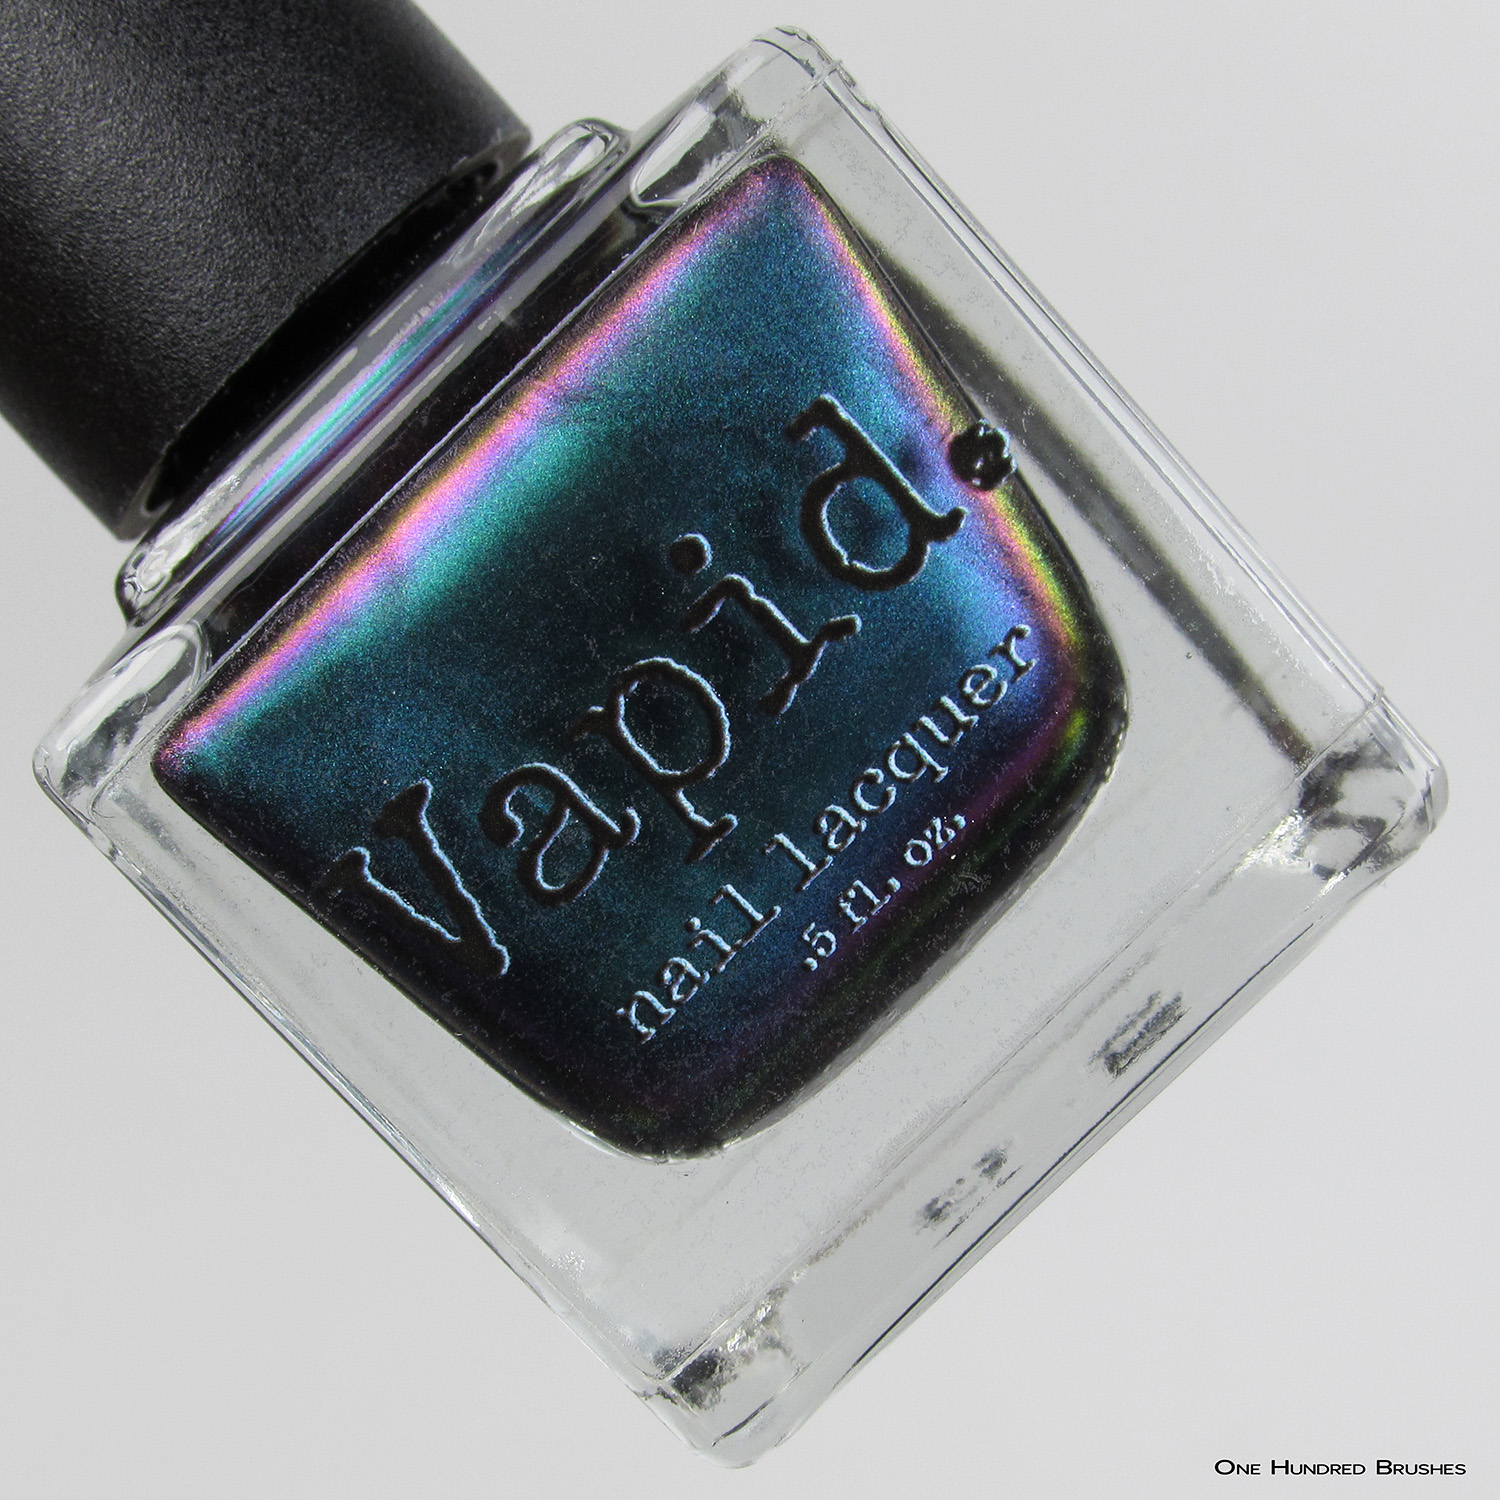 Canis Majoris - Cosmos Collection 2019 - Vapid Lacquer